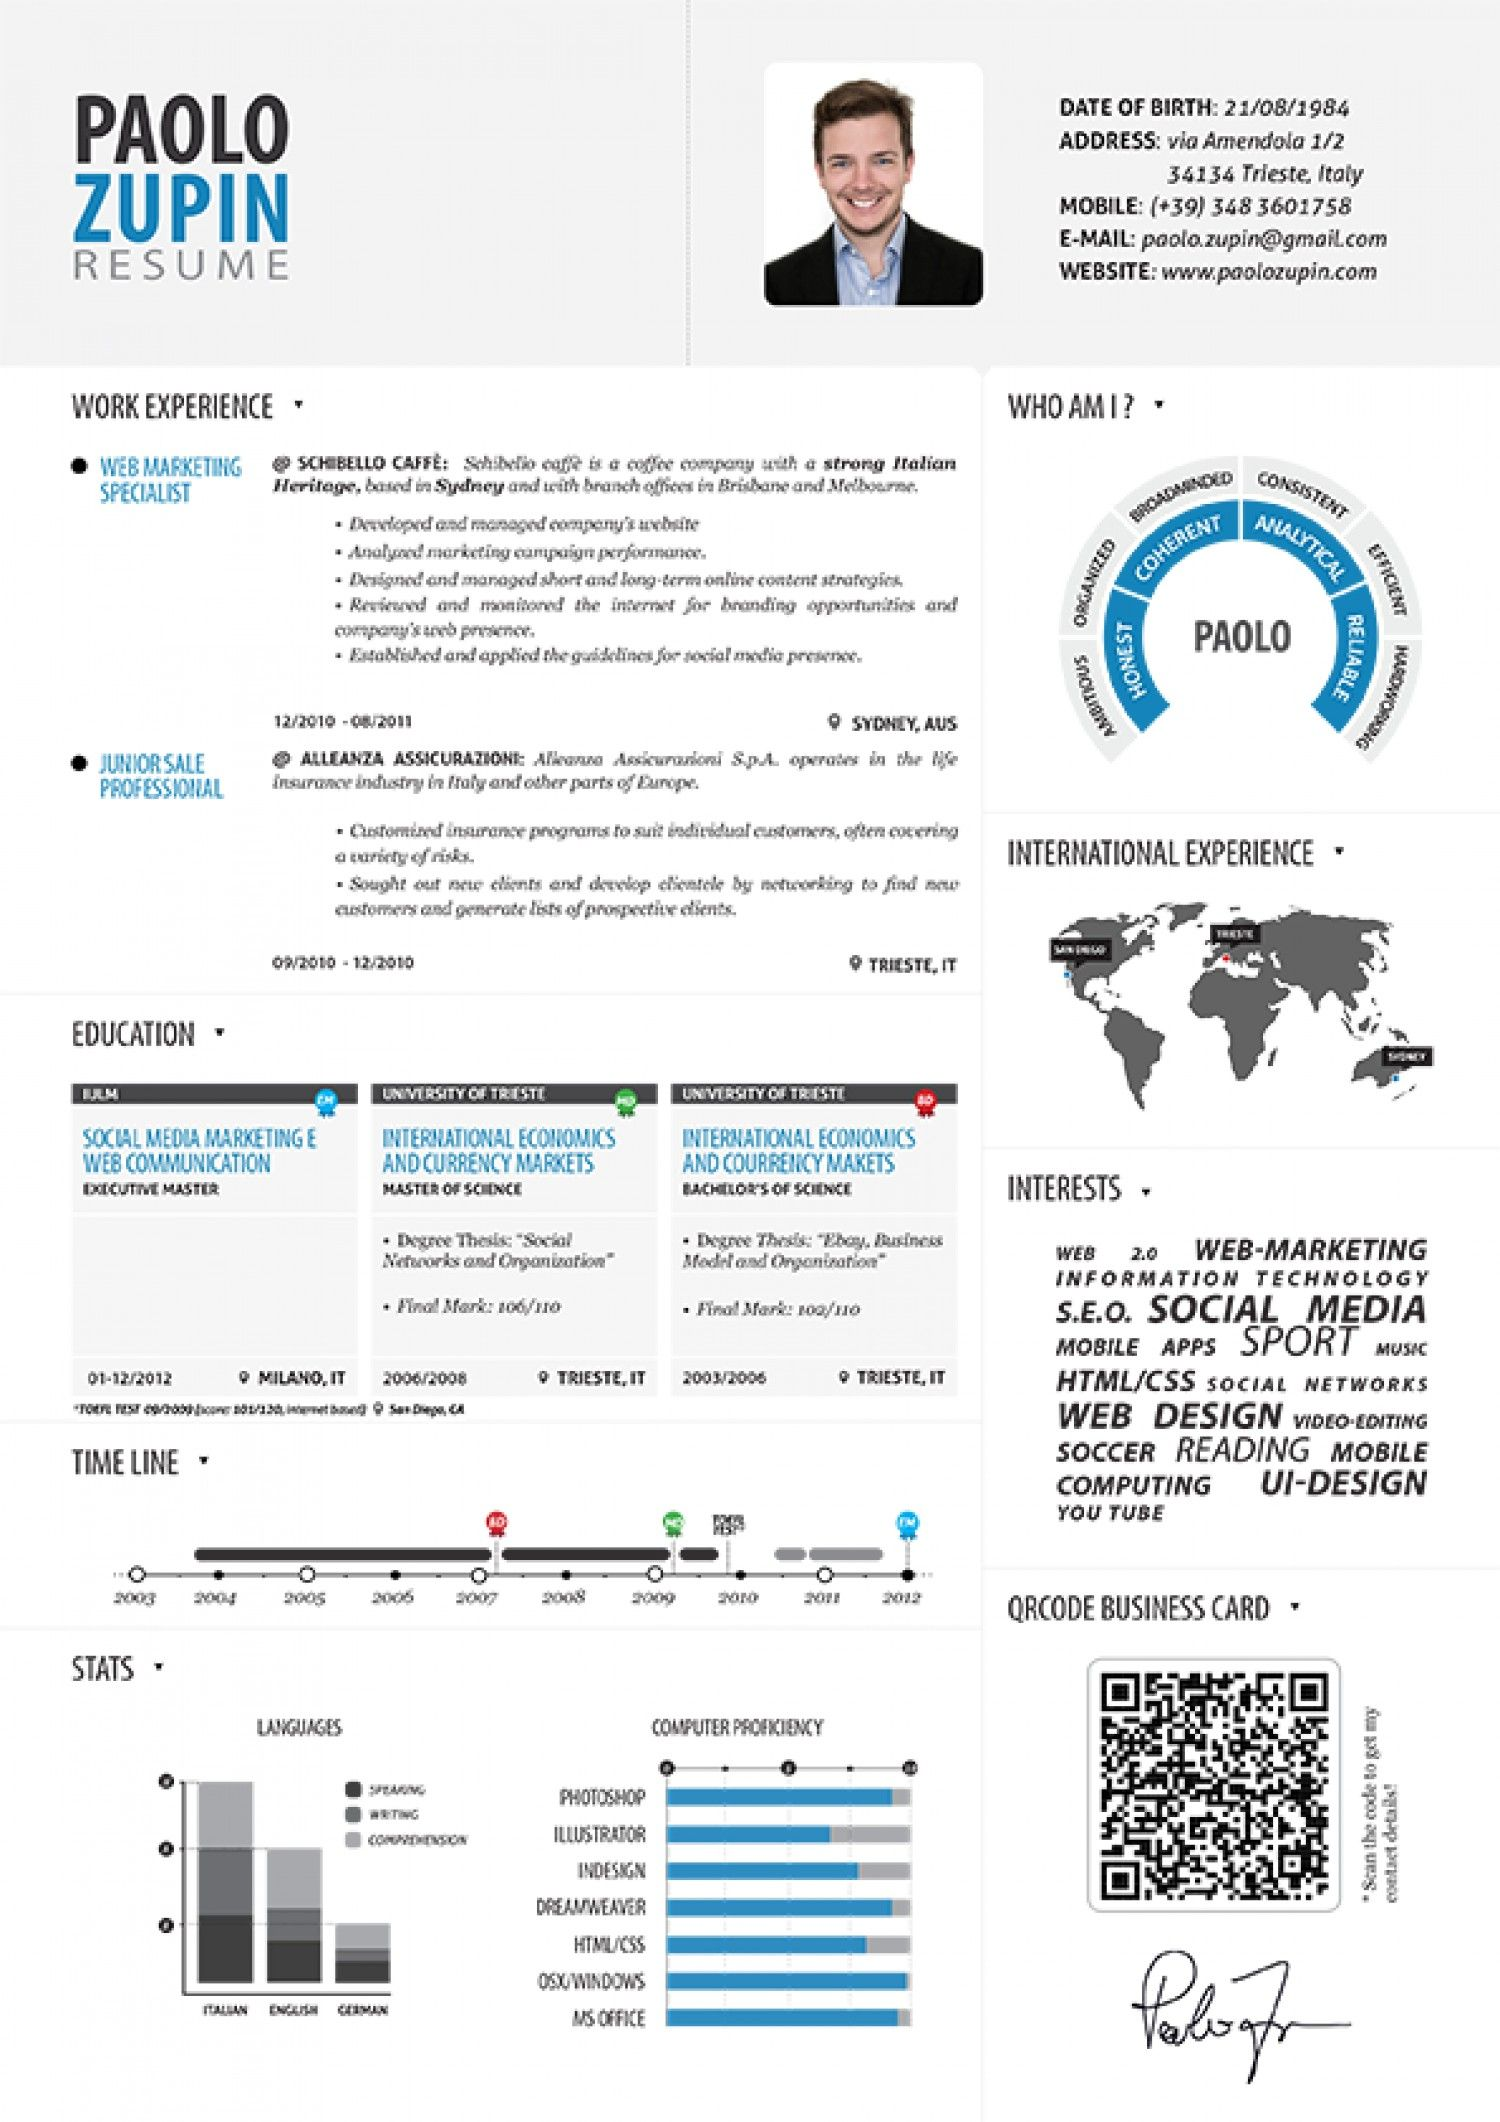 Opposenewapstandardsus  Stunning  Images About Infographic Resume On Pinterest  Infographic  With Interesting  Images About Infographic Resume On Pinterest  Infographic Resume Resume And Business Resume With Enchanting Cpa Resume Examples Also How To Write A Summary On A Resume In Addition Order Of Resume And Safety Resume As Well As Google Template Resume Additionally Reverse Chronological Order Resume From Pinterestcom With Opposenewapstandardsus  Interesting  Images About Infographic Resume On Pinterest  Infographic  With Enchanting  Images About Infographic Resume On Pinterest  Infographic Resume Resume And Business Resume And Stunning Cpa Resume Examples Also How To Write A Summary On A Resume In Addition Order Of Resume From Pinterestcom